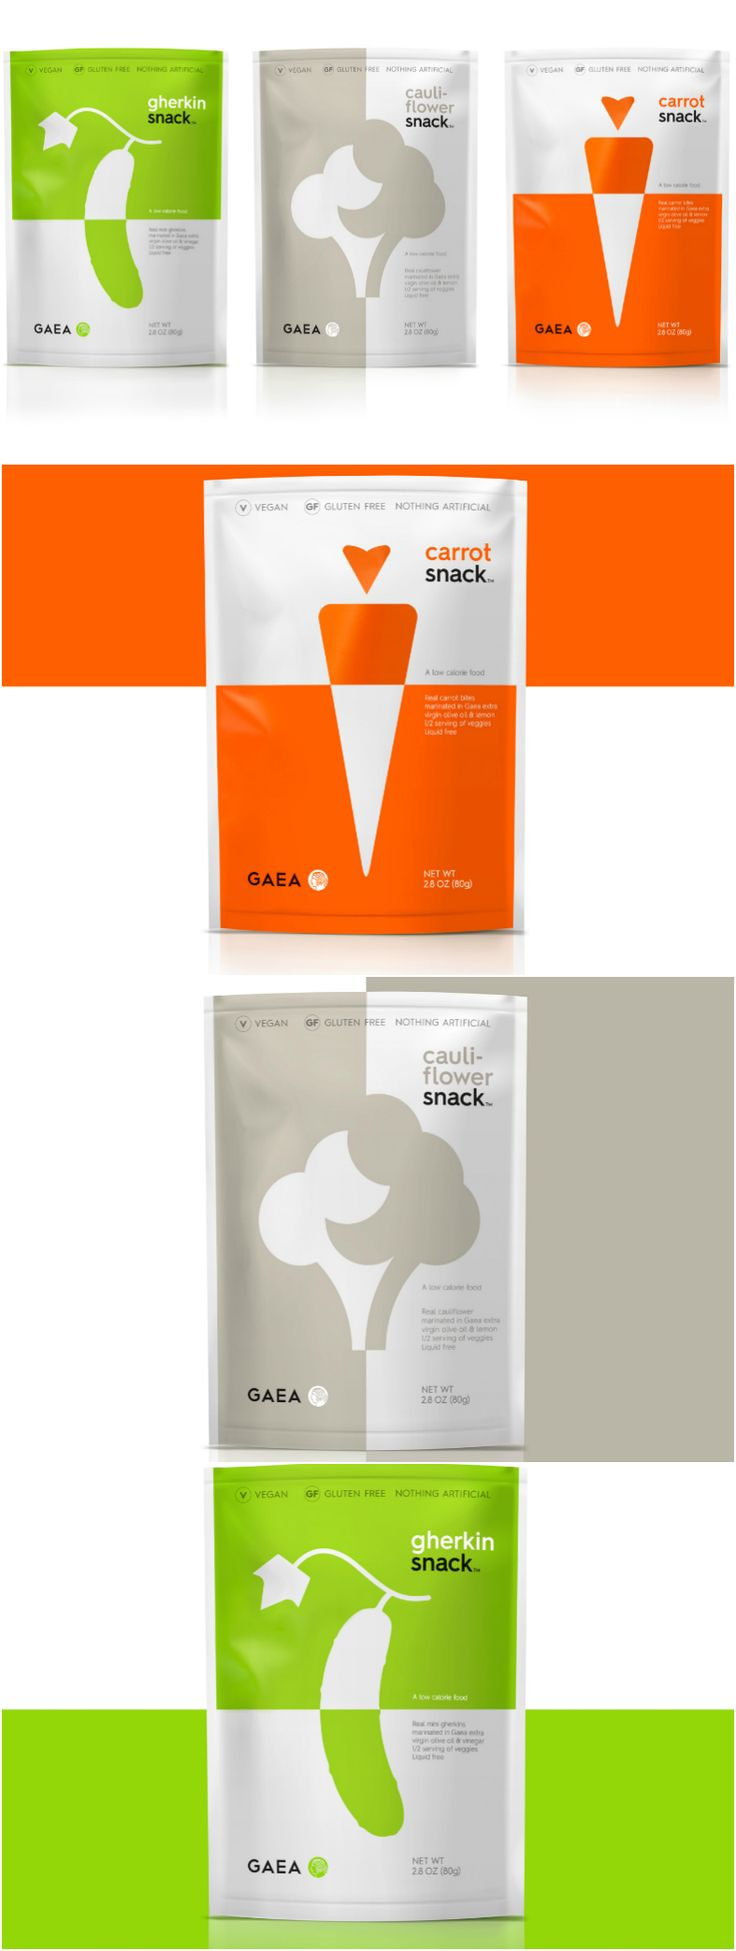 Design Agency: mousegraphics Project name: GAEA Location: Greece Category: Fresh foods